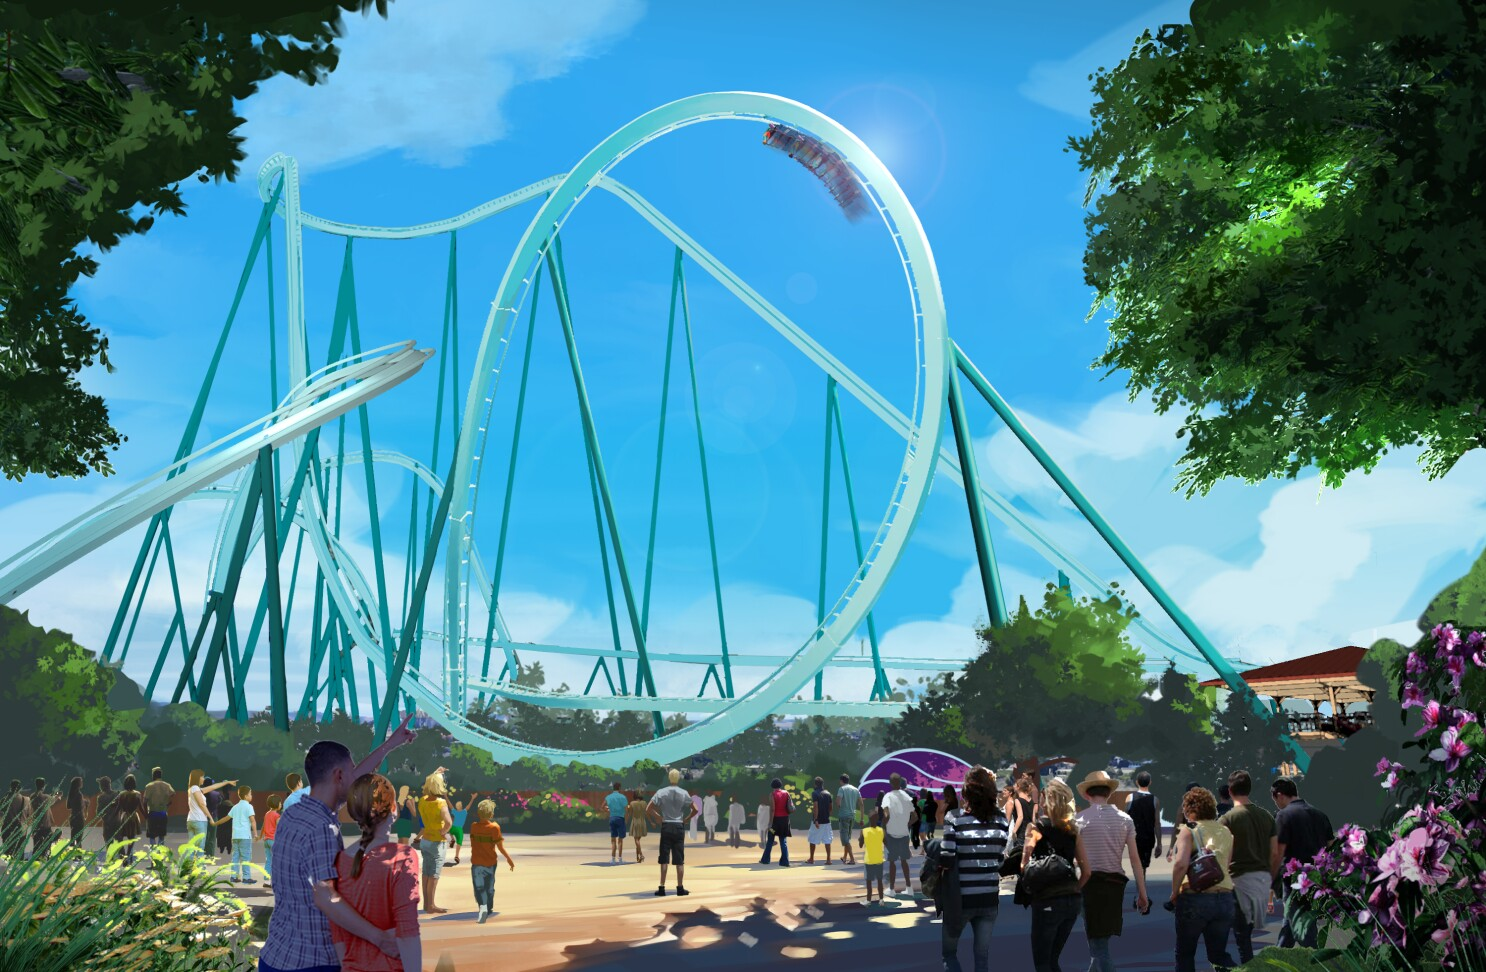 SeaWorld names its new dive roller coaster after the Emperor penguin